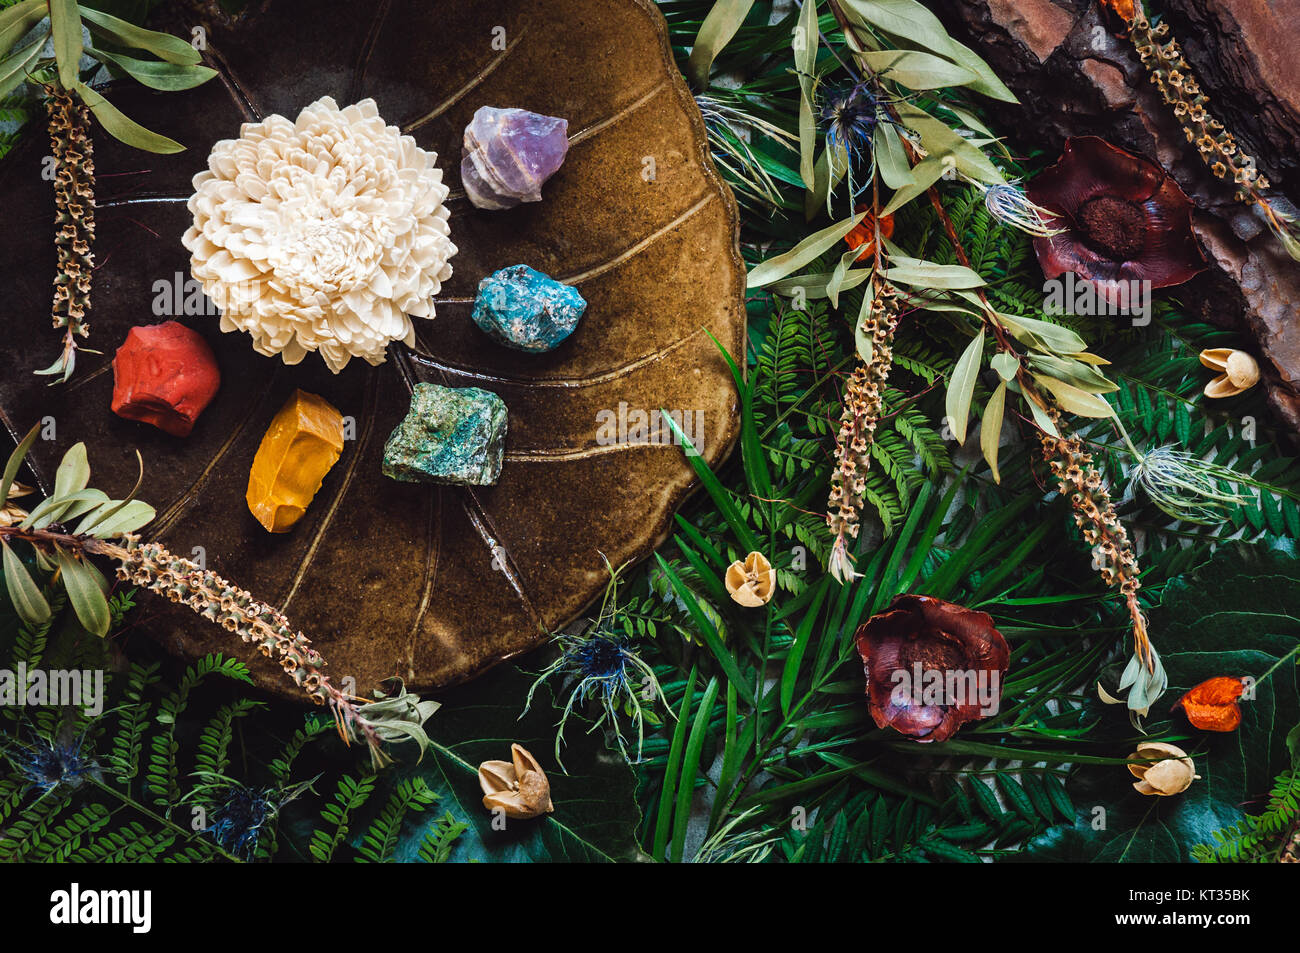 Rainbow of Crystals in order of Chakras with Botanicals - Stock Image